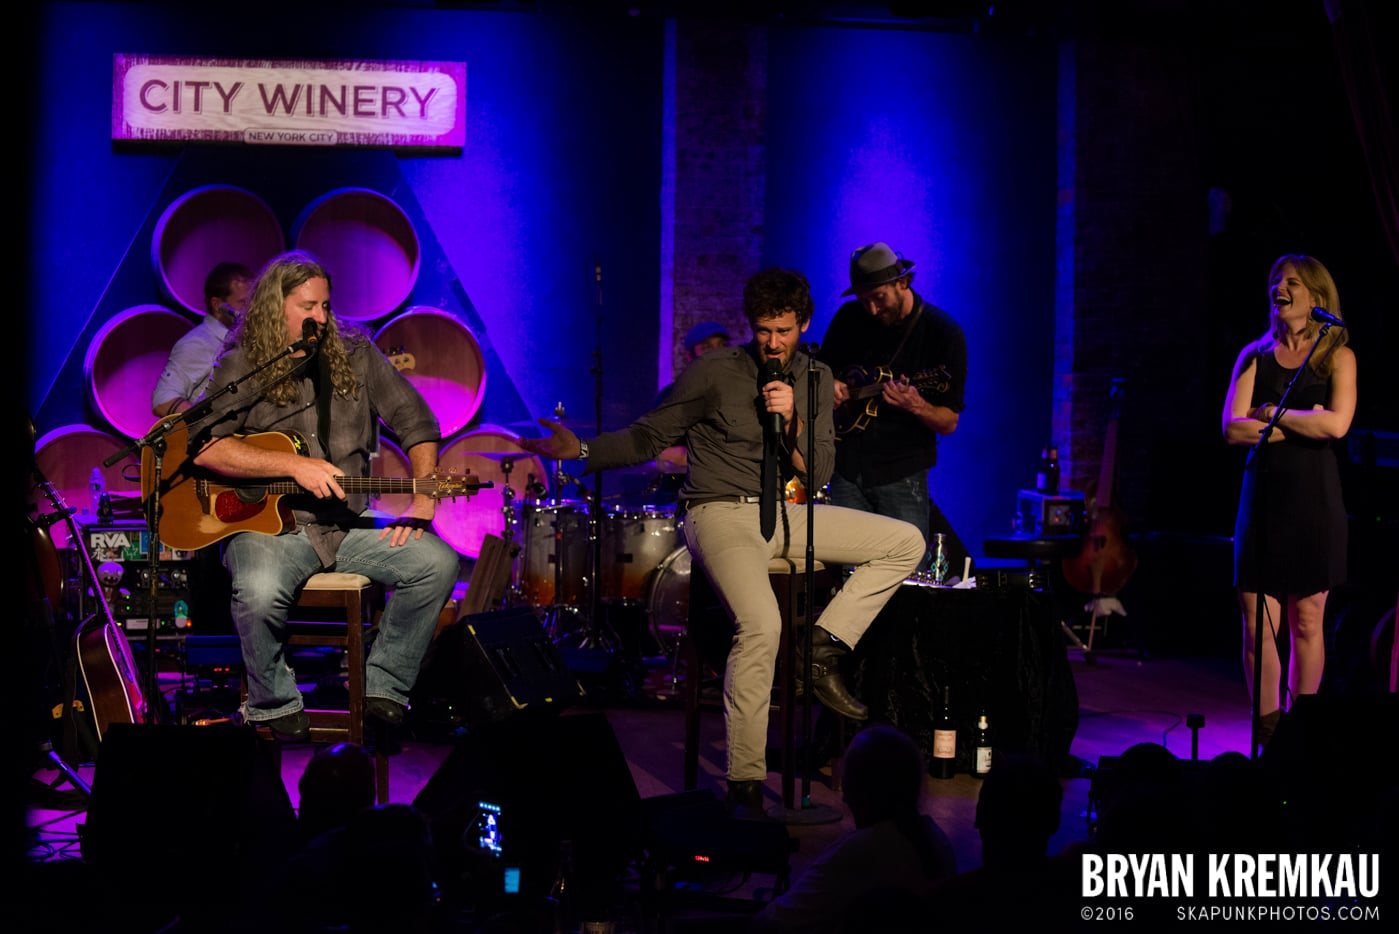 Carbon Leaf @ City Winery, NYC - July 11th 2013 - Bryan Kremkau (12)